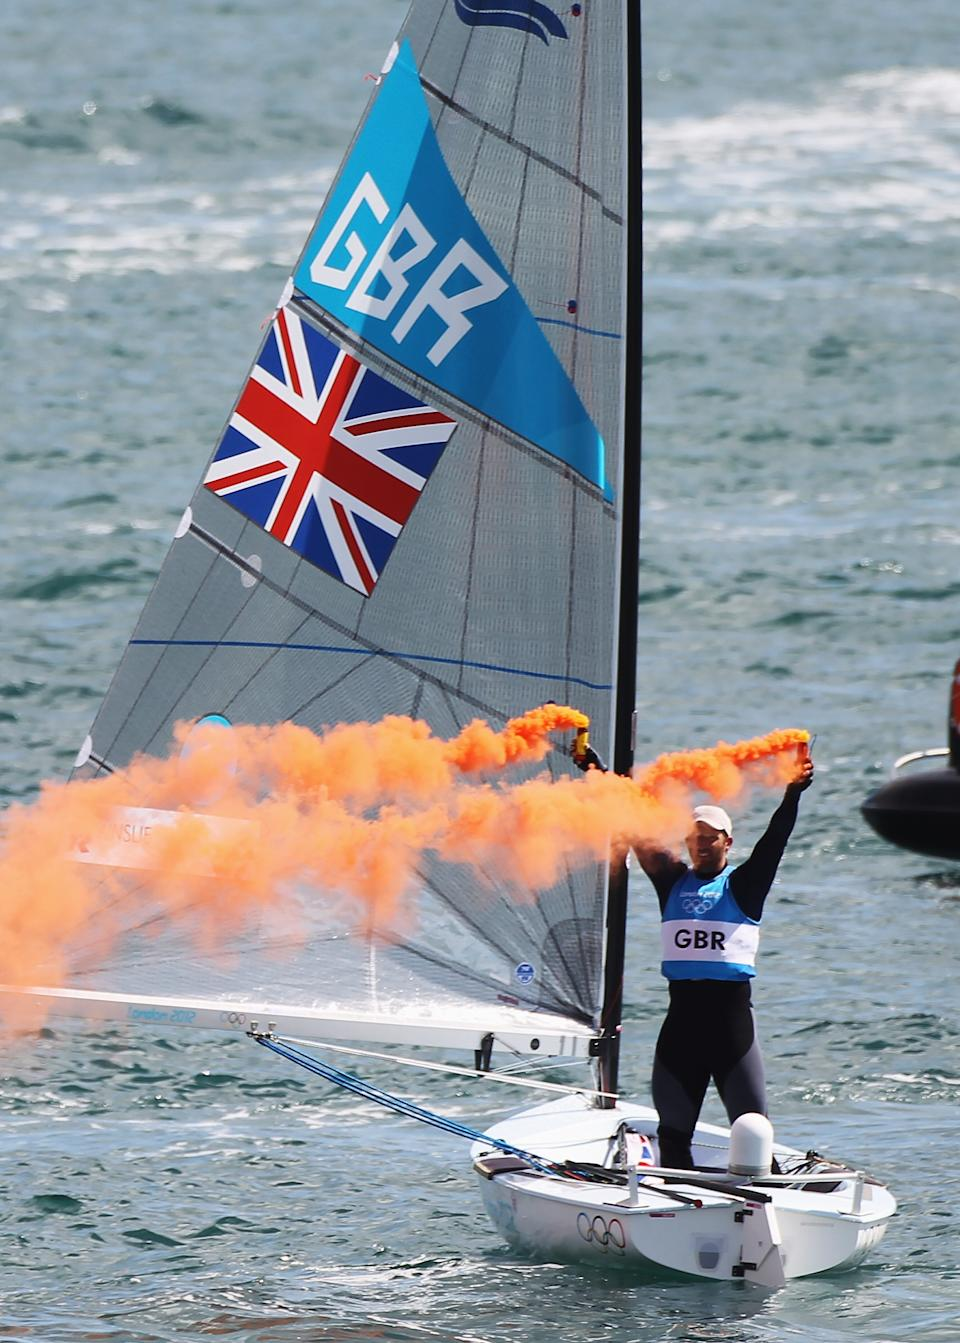 WEYMOUTH, ENGLAND - AUGUST 05: Ben Ainslie of Great Britain celebrates overall victory after competing in the Men's Finn Sailing Medal Race on Day 9 of the London 2012 Olympic Games at the Weymouth & Portland Venue at Weymouth Harbour on August 5, 2012 in Weymouth, England. (Photo by Getty Images)